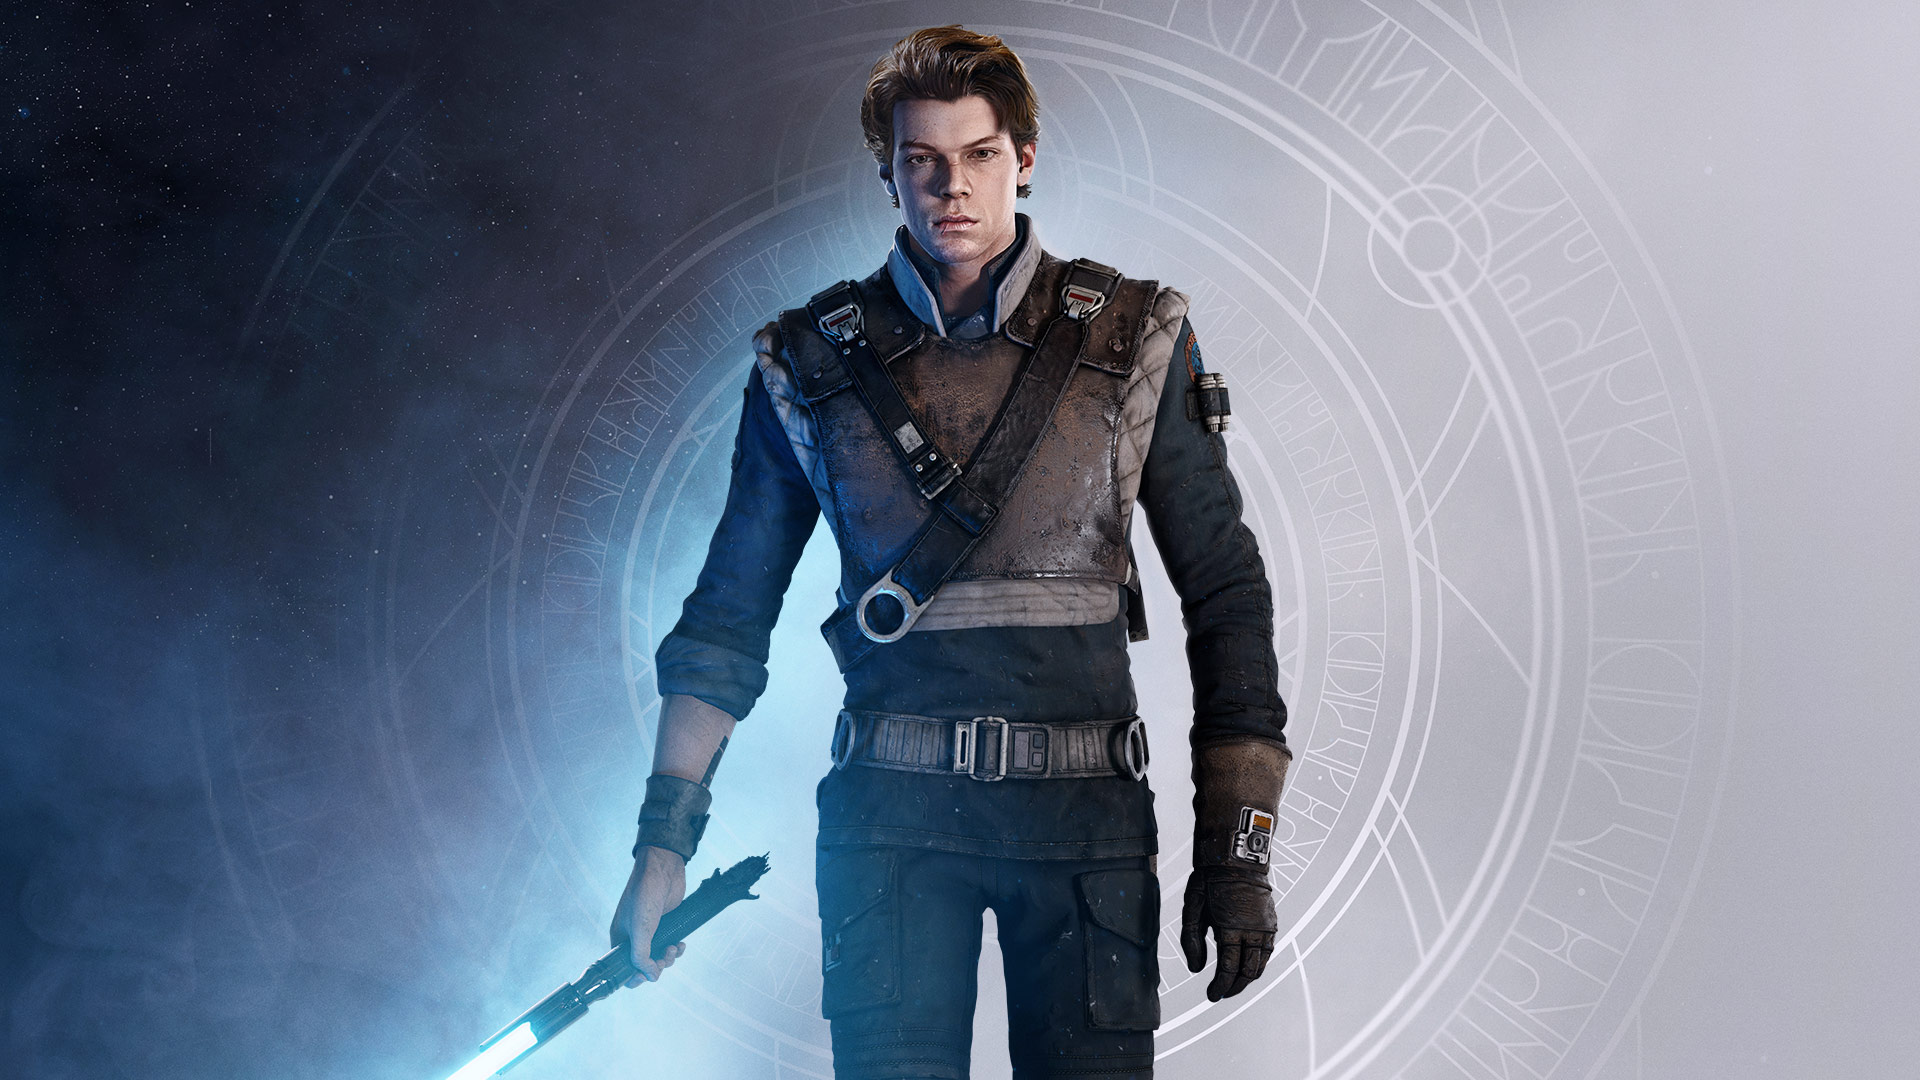 Category Star Wars Jedi Fallen Order Steam Trading Cards Wiki Fandom